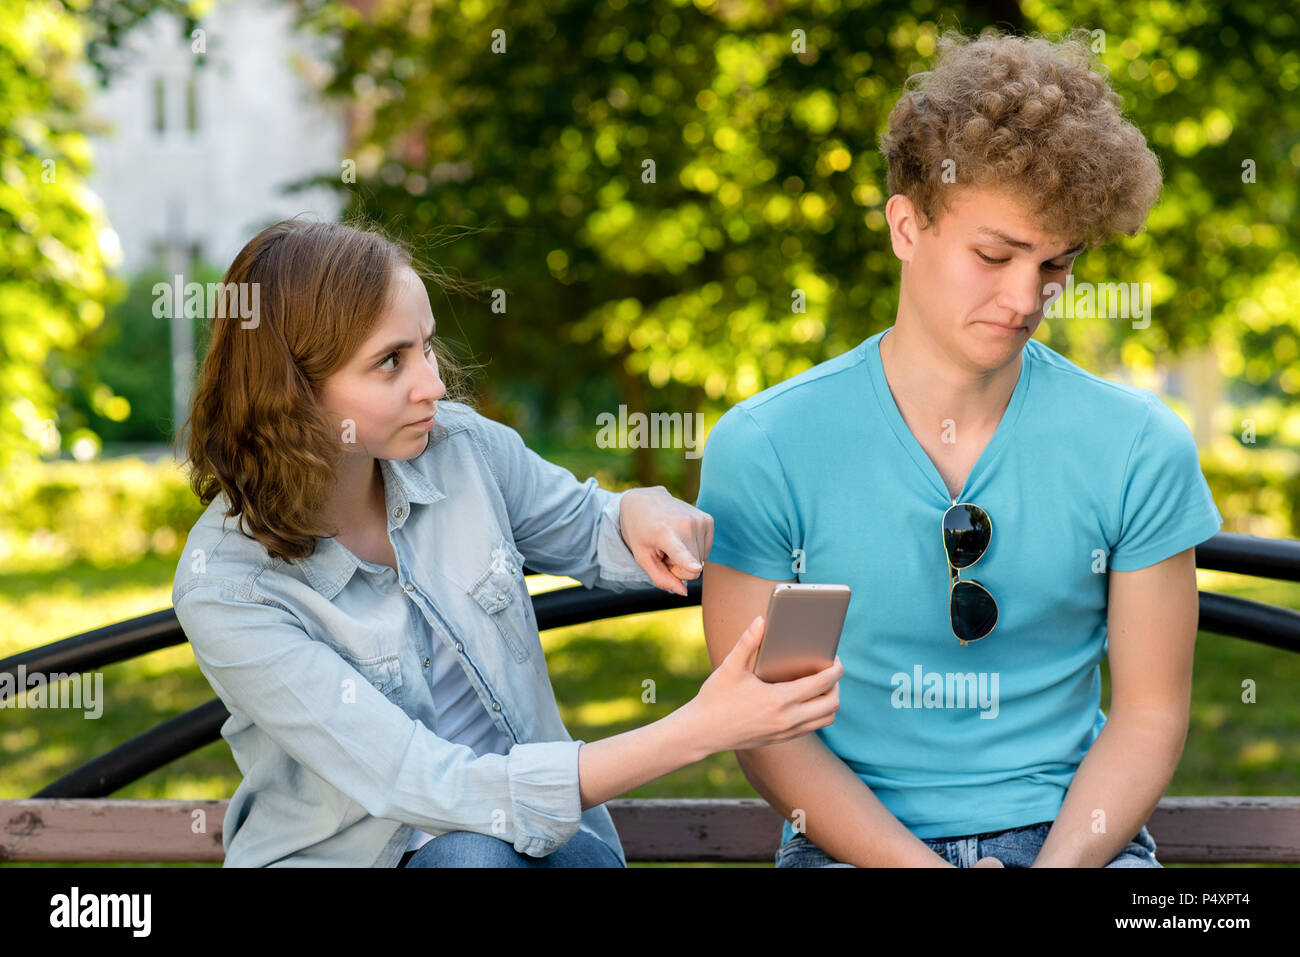 Guy with girl on nature. A woman is pointing at smartphone. Guy looks at correspondence with astonishment. Concept of betrayal betrayal of a young couple in summer. The problem is in relationship. - Stock Image